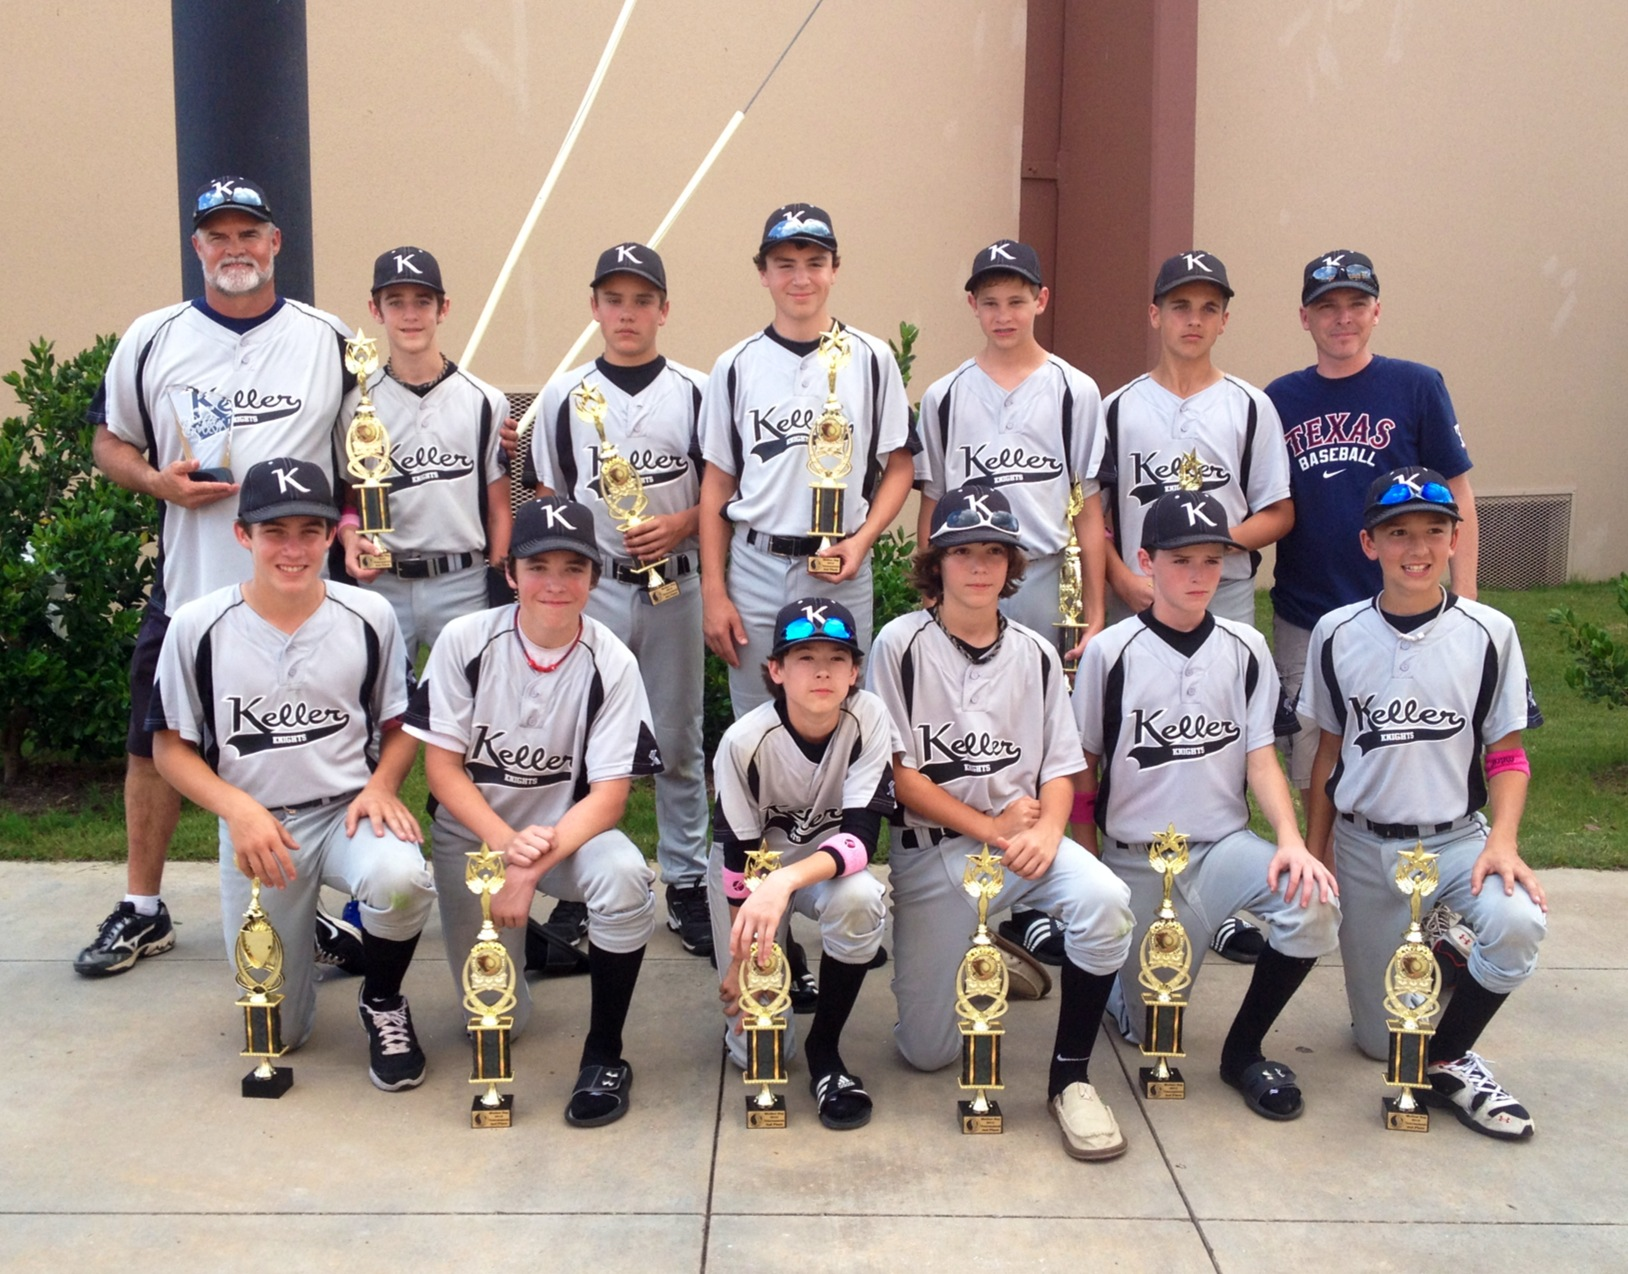 13U KELLER KNIGHTS -- KELLER, TXN